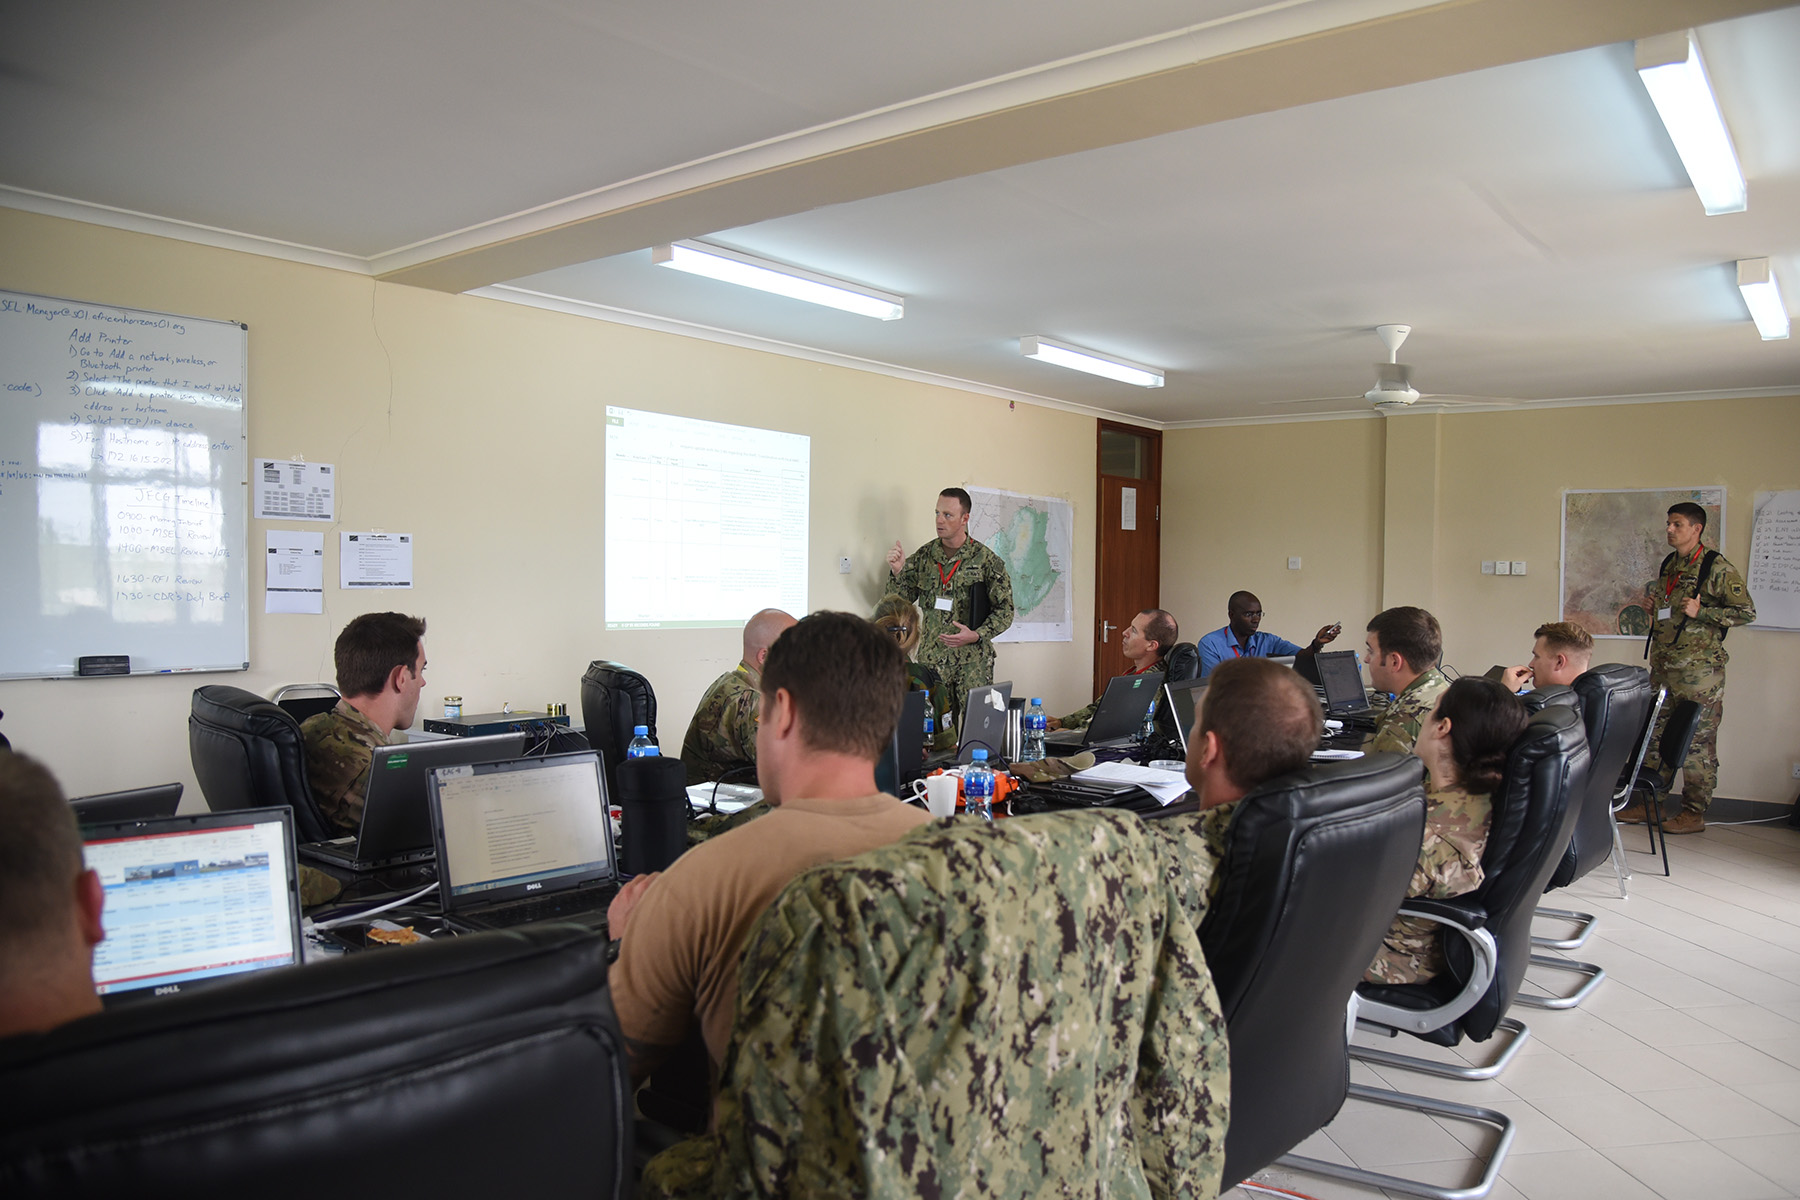 DAR ES SALAAM, Tanzania – Eastern Accord 2016 master scenario events list script writers review exercise injects for the command post exercise at the Tanzanian Peacekeeping Training Centre, July 16, 2016, in Dar es Salaam, Tanzania. EA16 is an annual, combined, joint military exercise that brings together partner nations to practice and demonstrate proficiency in conducting peacekeeping operations. (U.S. Air Force photo by Staff Sgt. Tiffany DeNault)